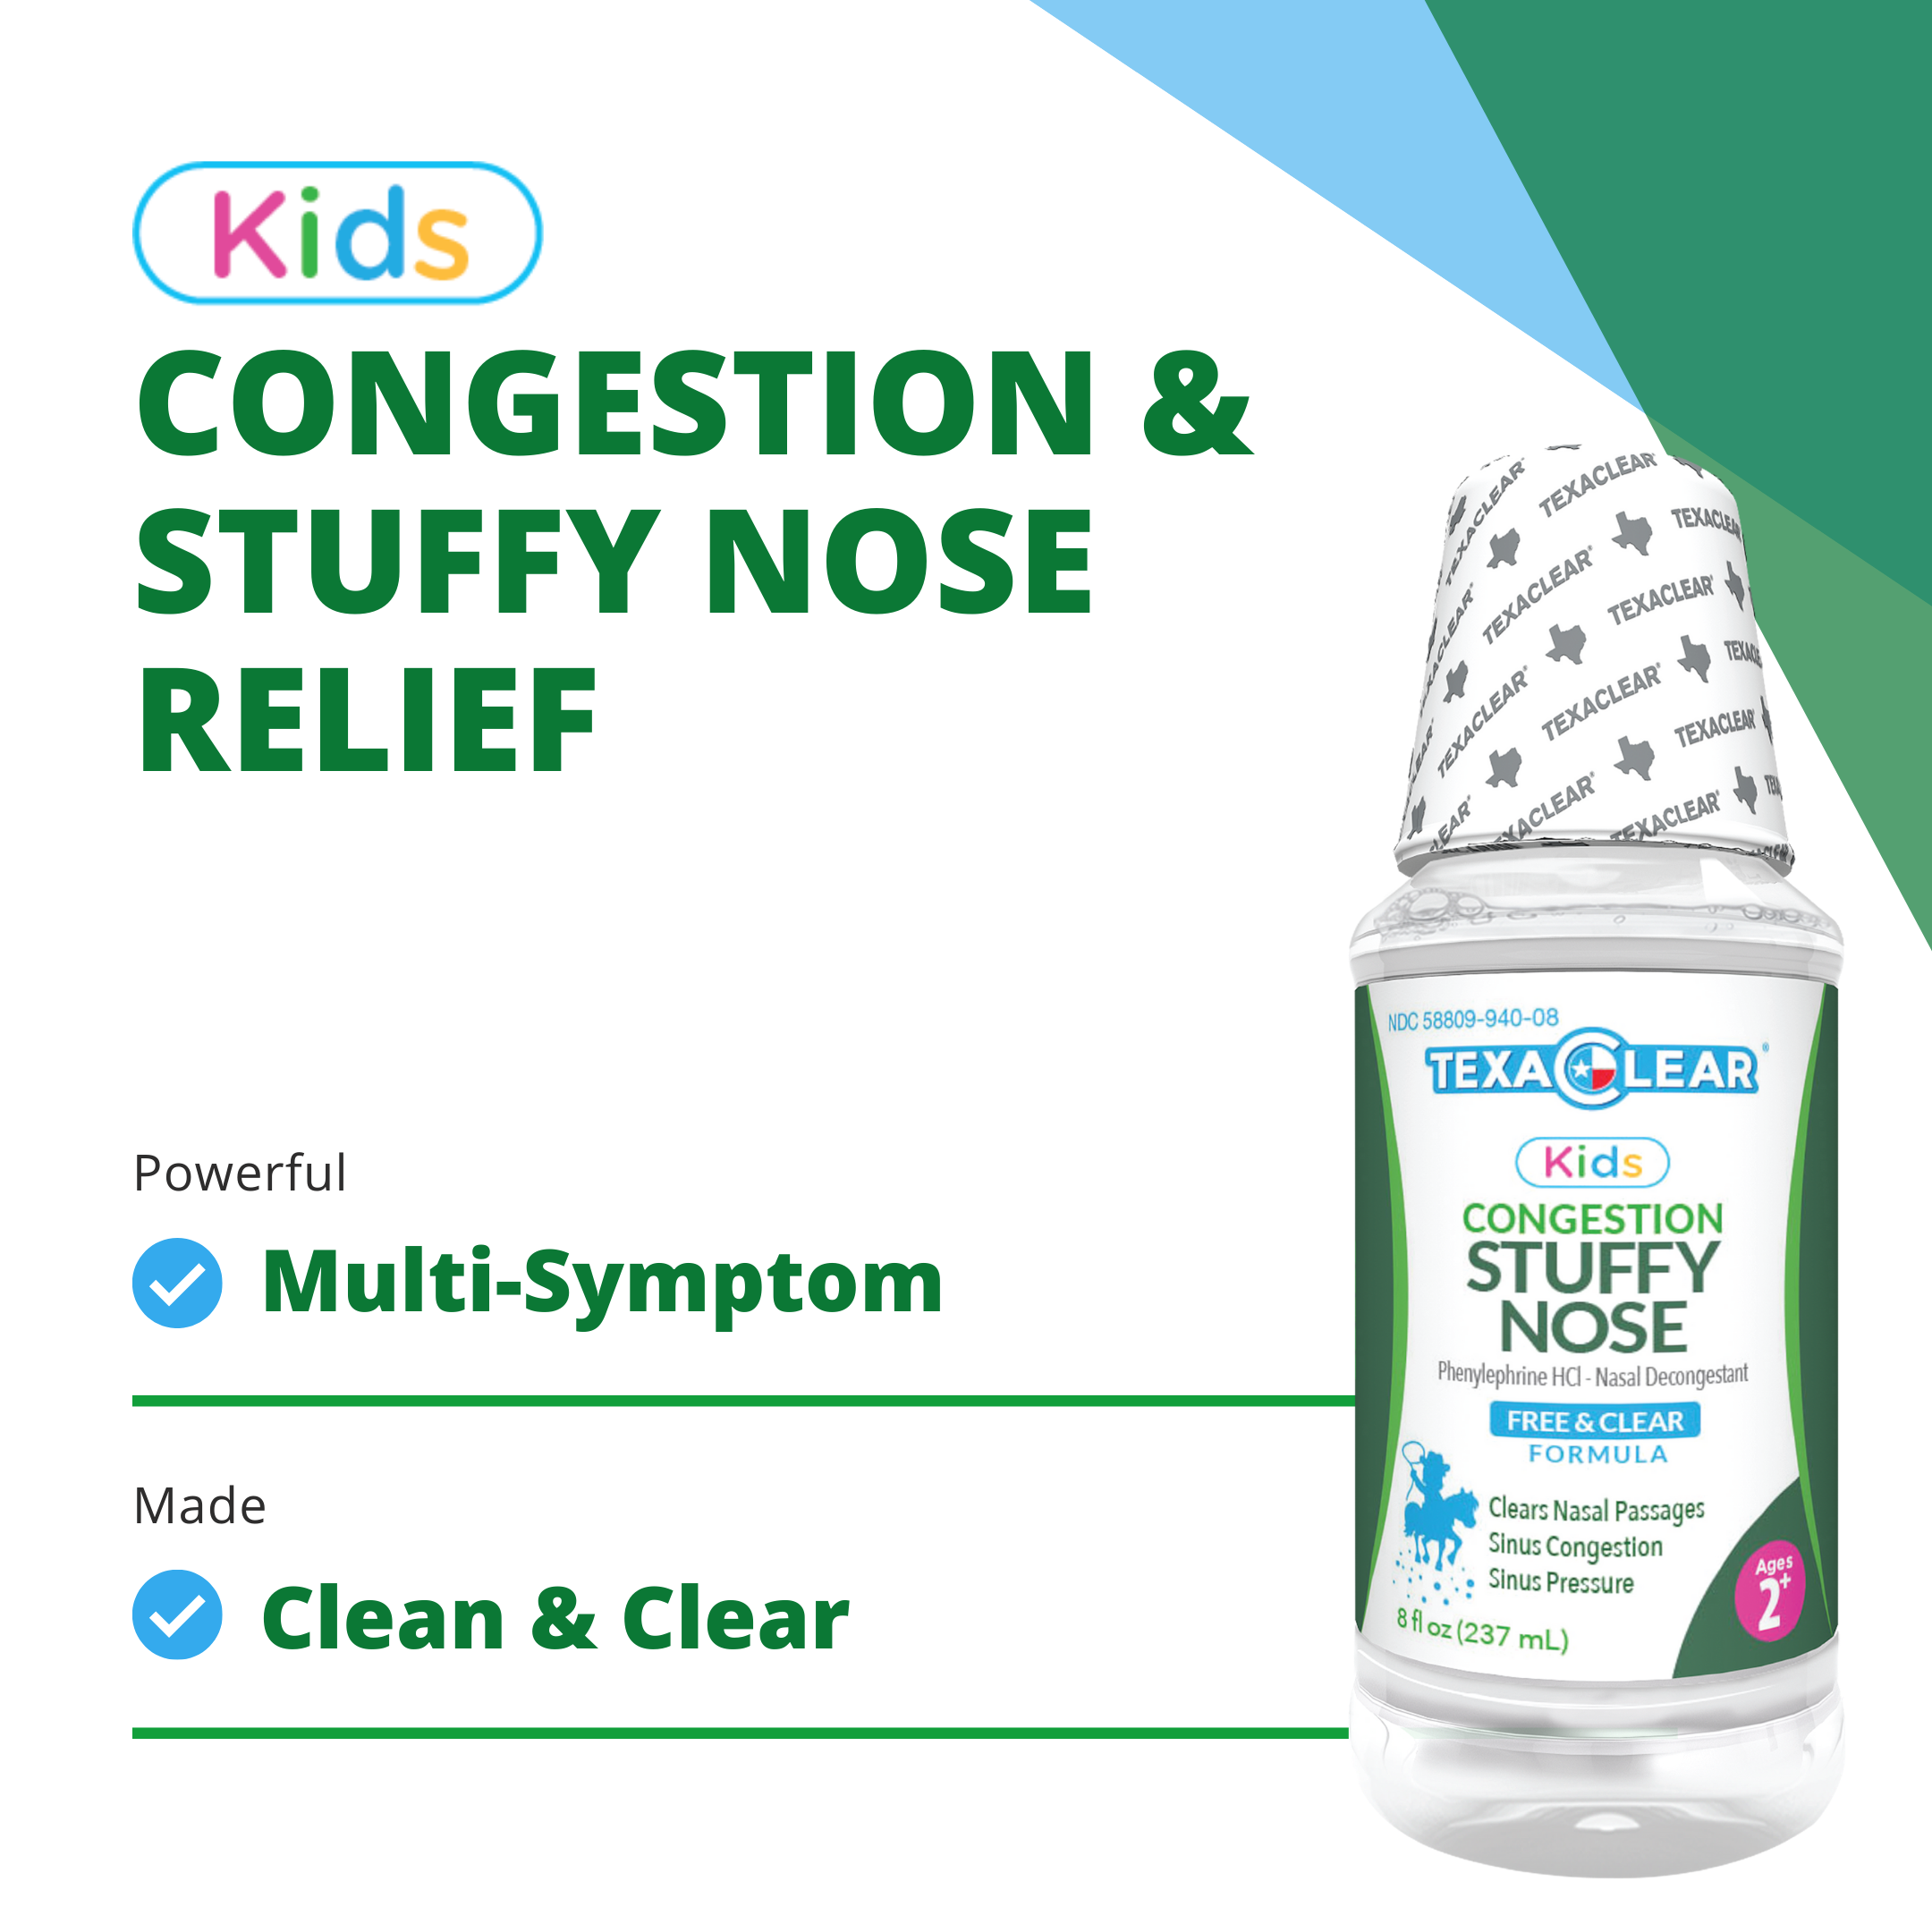 TexaClear Kids Stuffy Nose Relief - Ages 2+